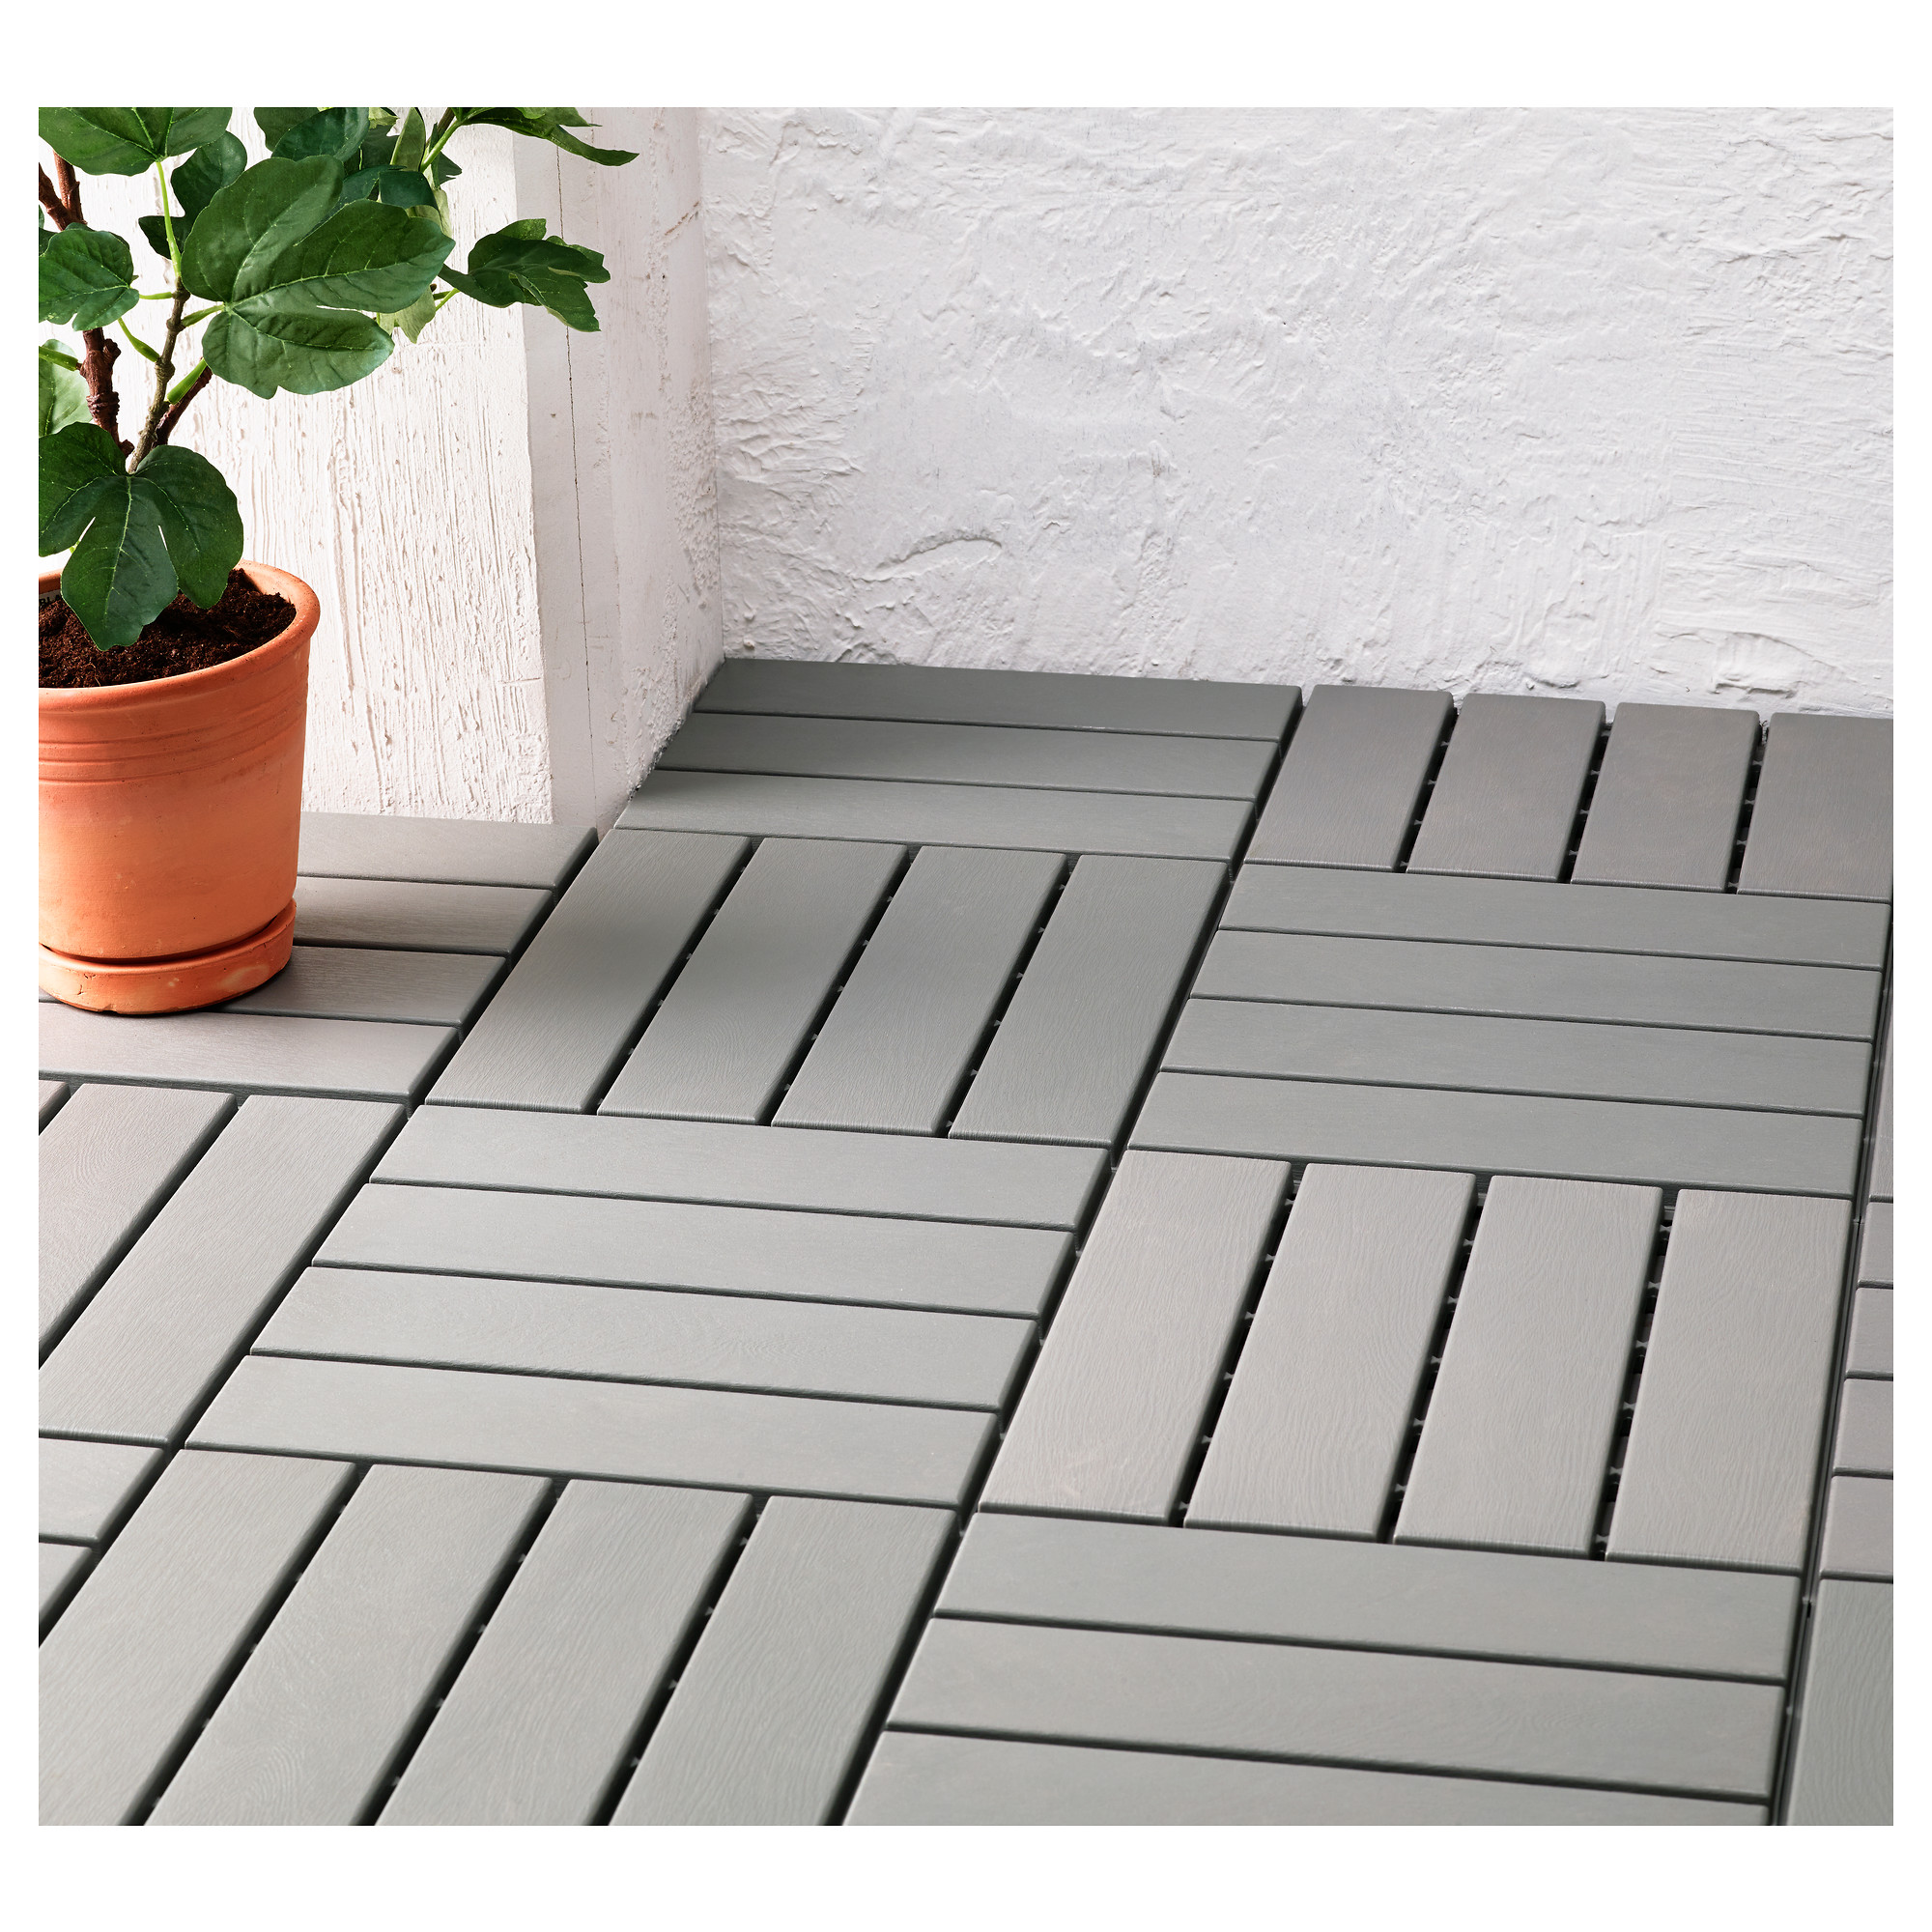 tile cheap tiles grey wood full of ikea deck oak flooring floor home laminate wall discontinued depot size color gray plastic sightly decking